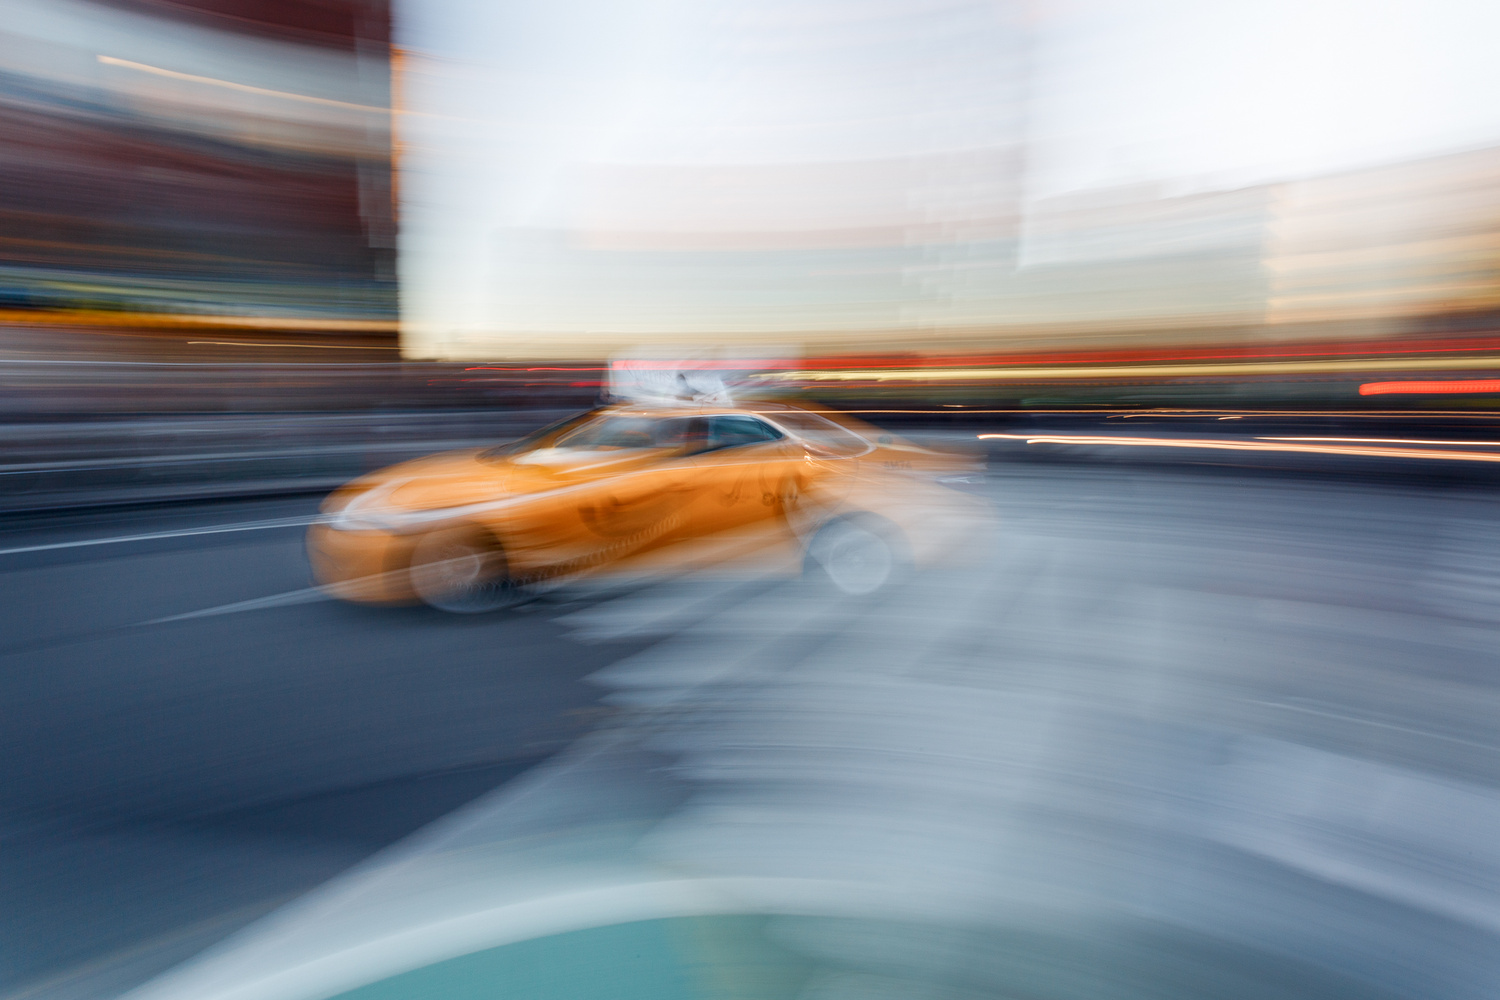 New York Taxi in a New York Minute by Marc DeGeorge